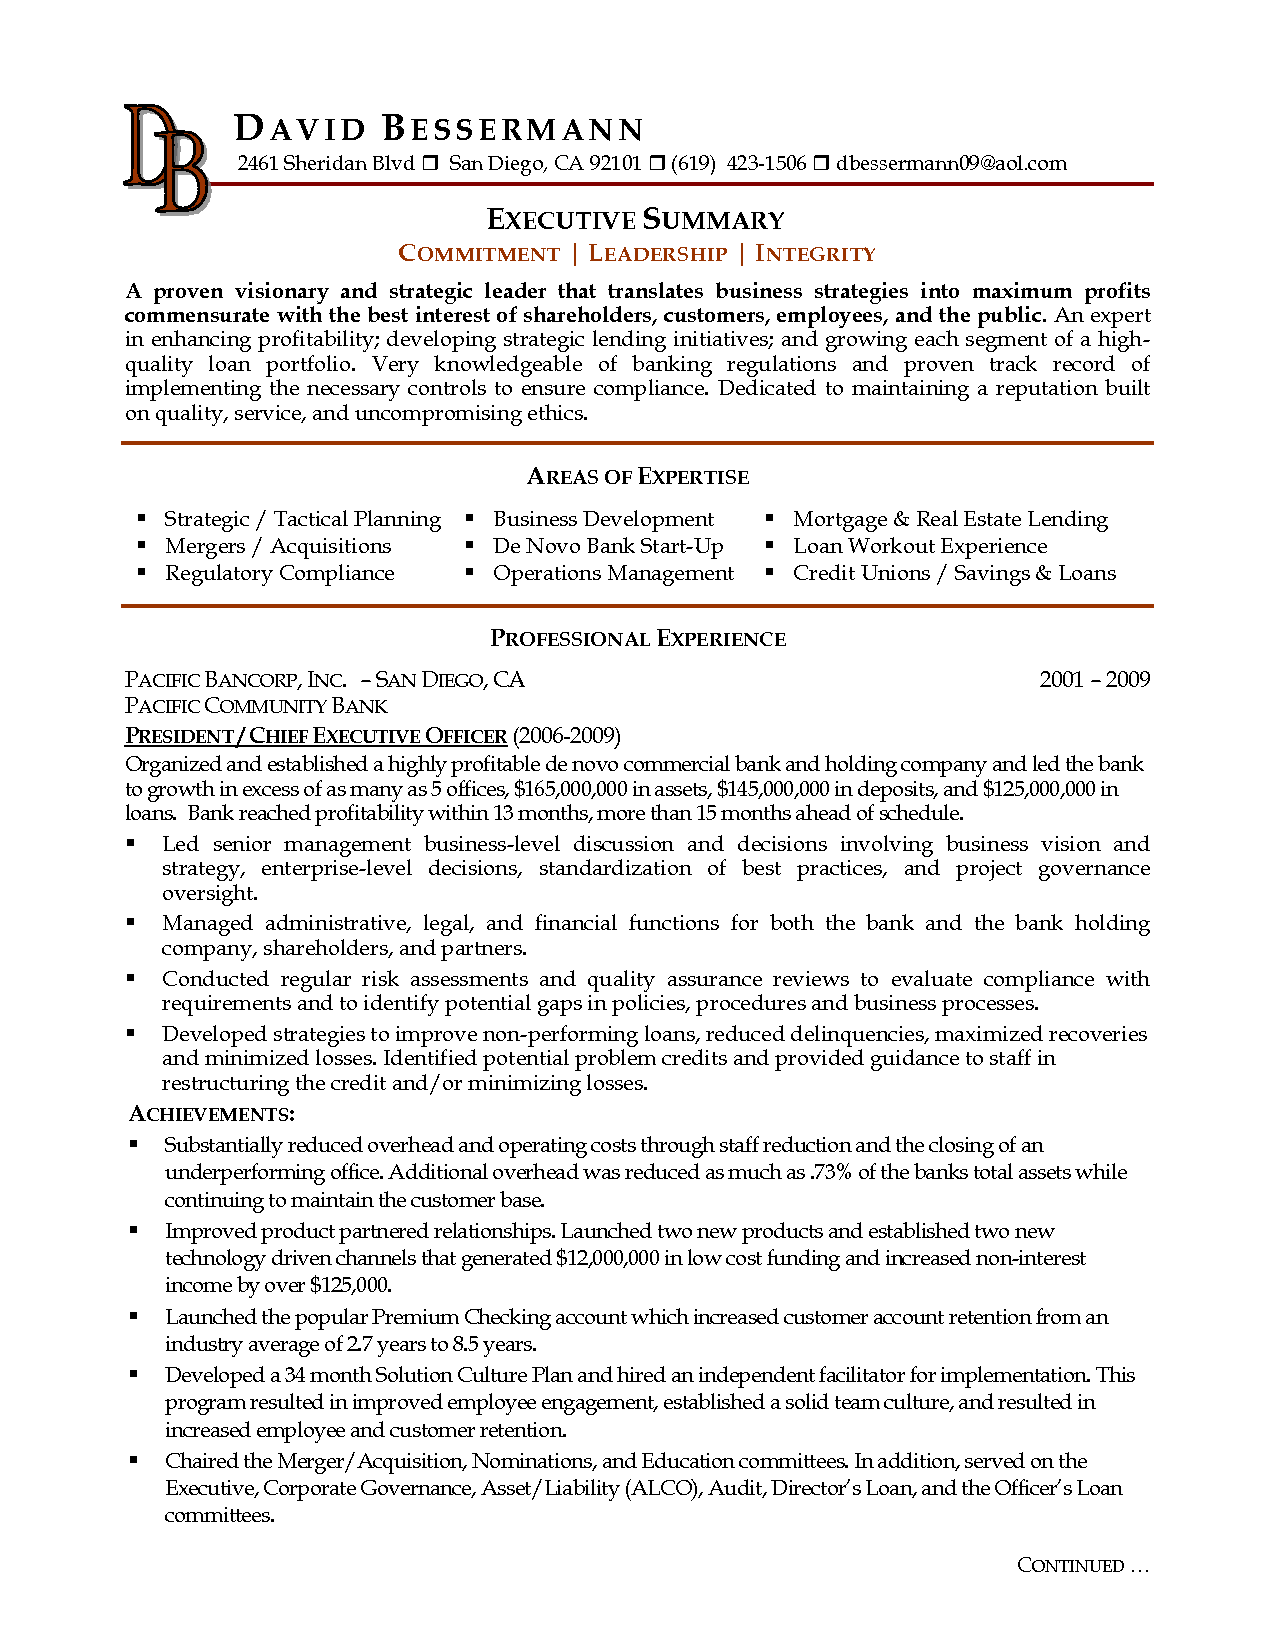 Printable Resume Template Resume Formats Format Software Samples Cover Letter Related Free